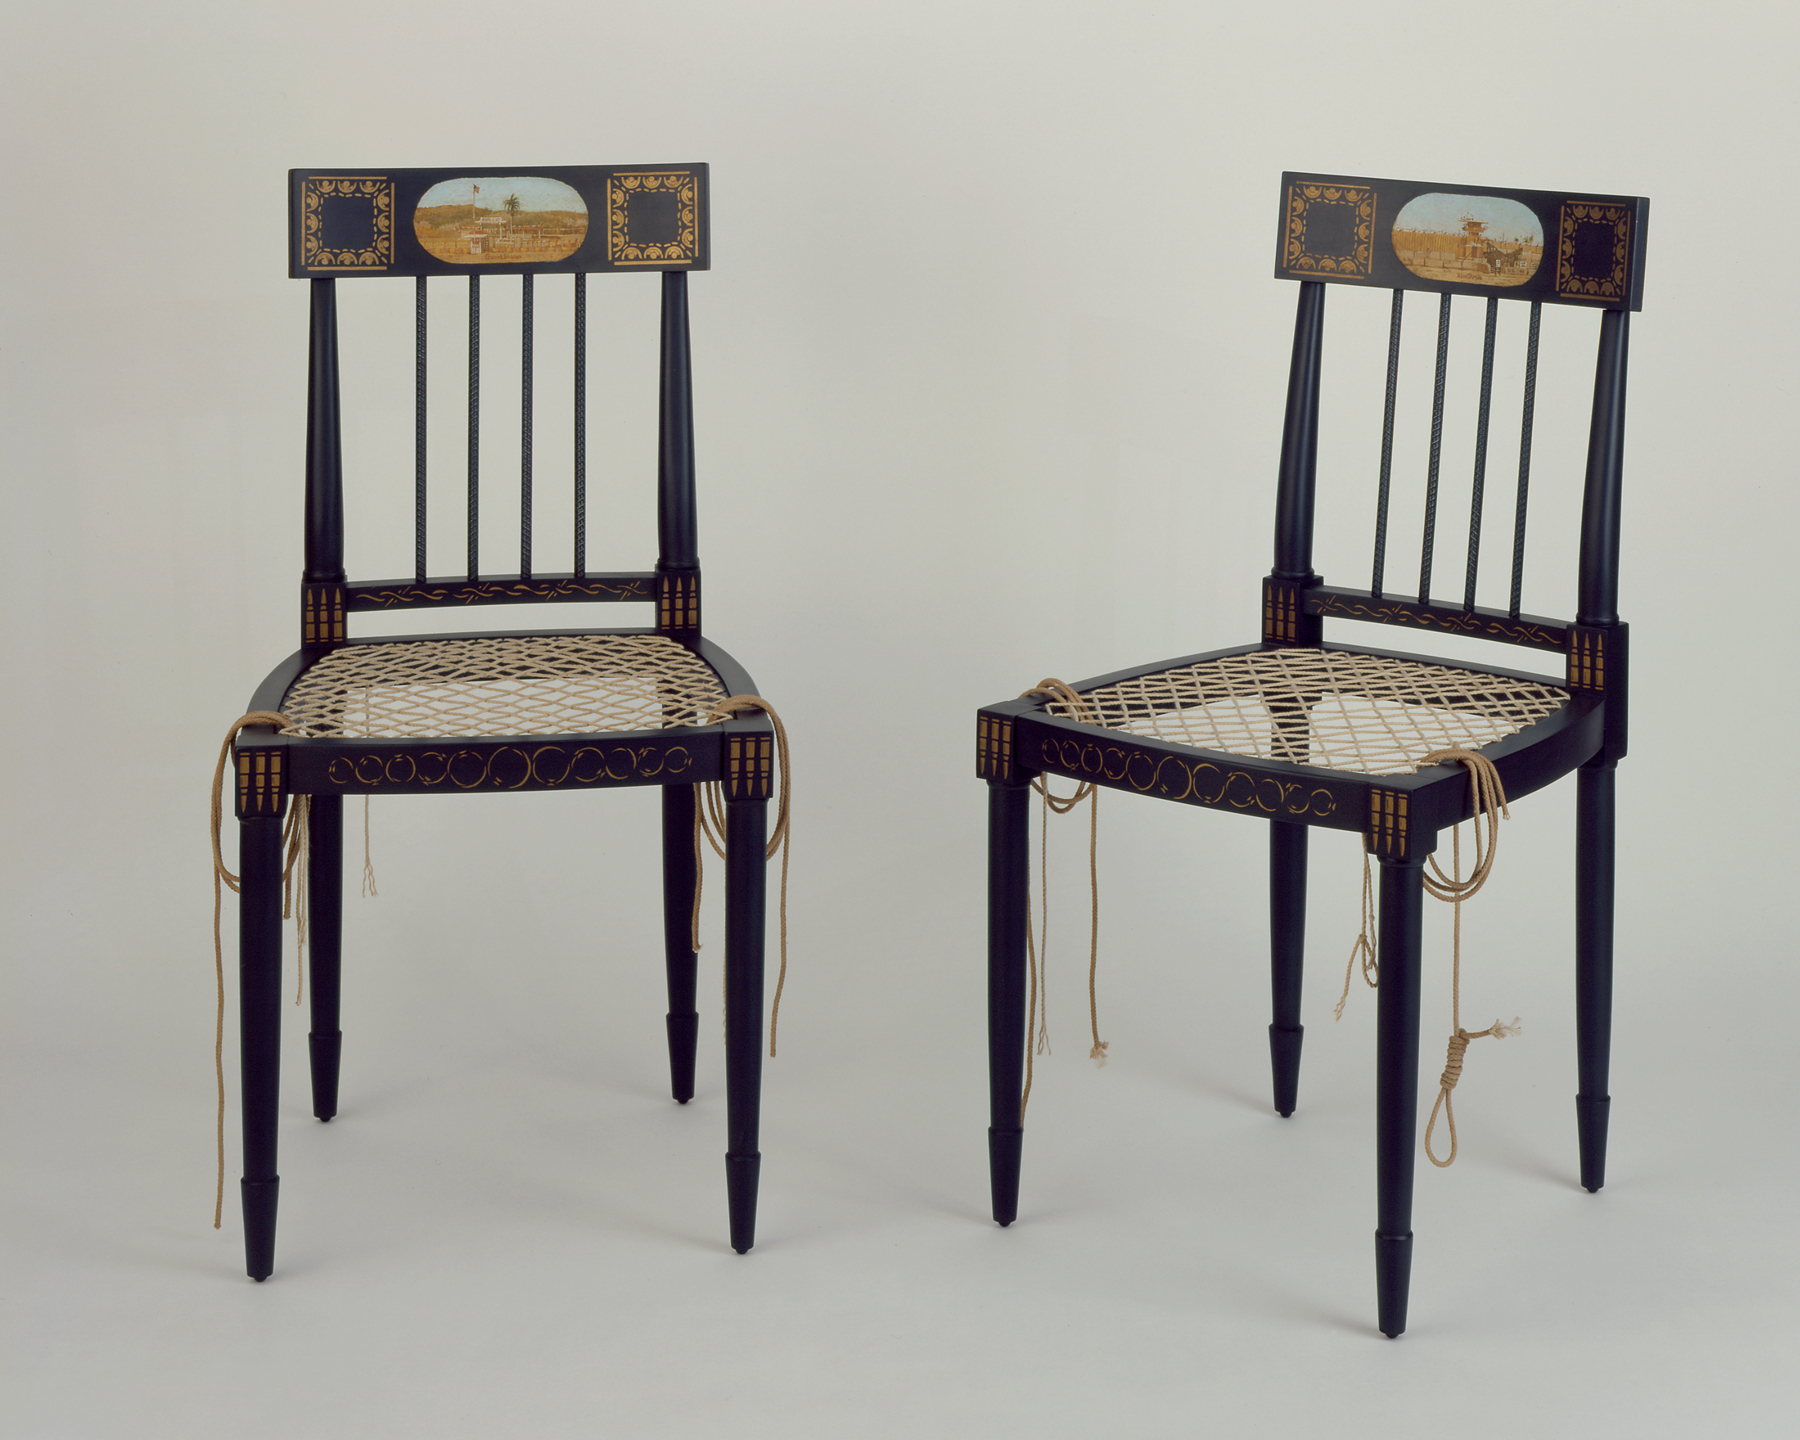 Conversation Chairs Paul Henry Furniture Custom Woodworking